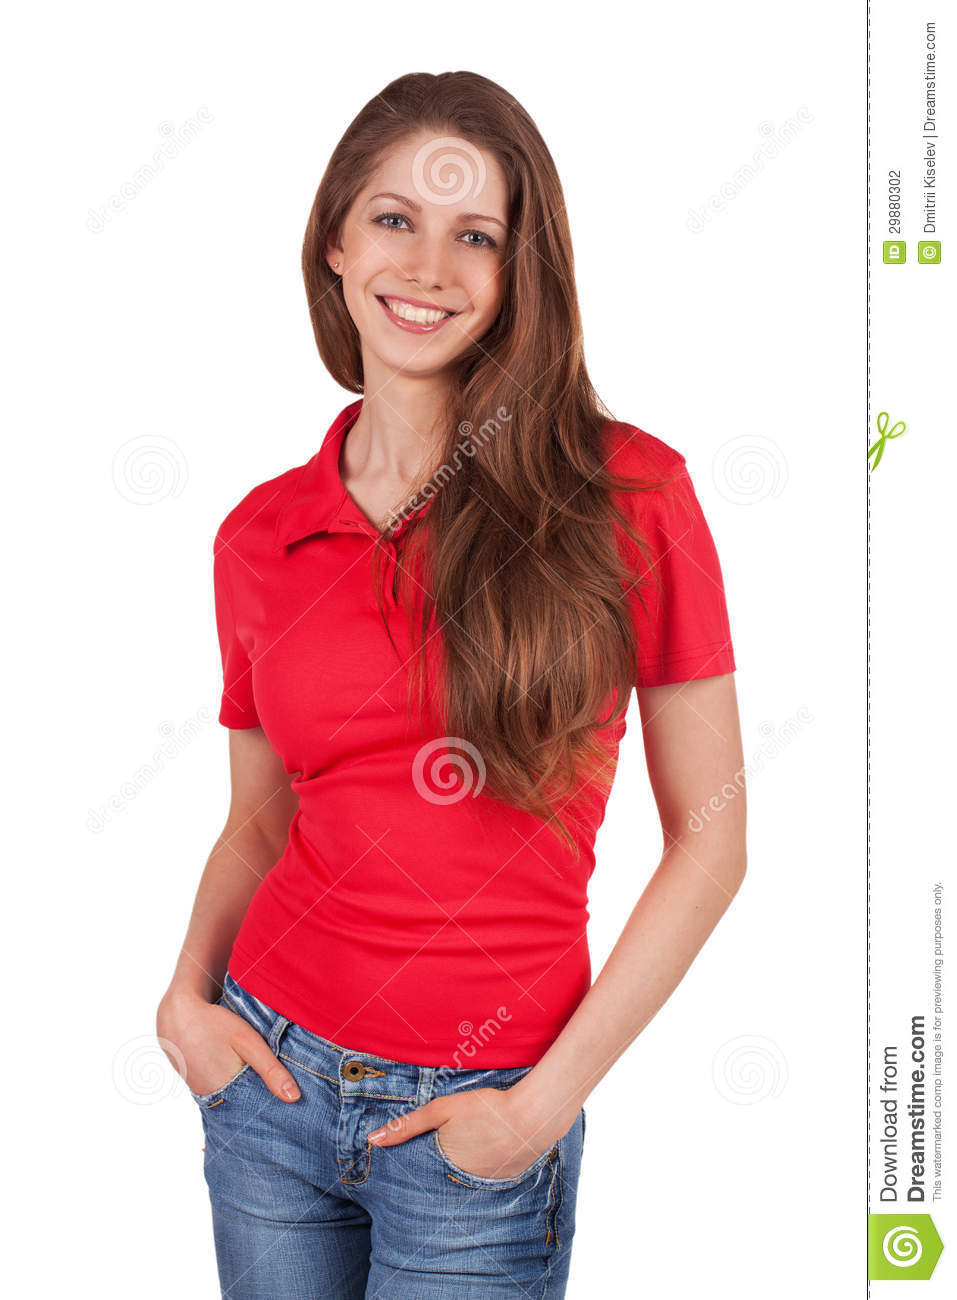 Girl In Jeans And A Red T-shirt Stock Photography - Image 29880302